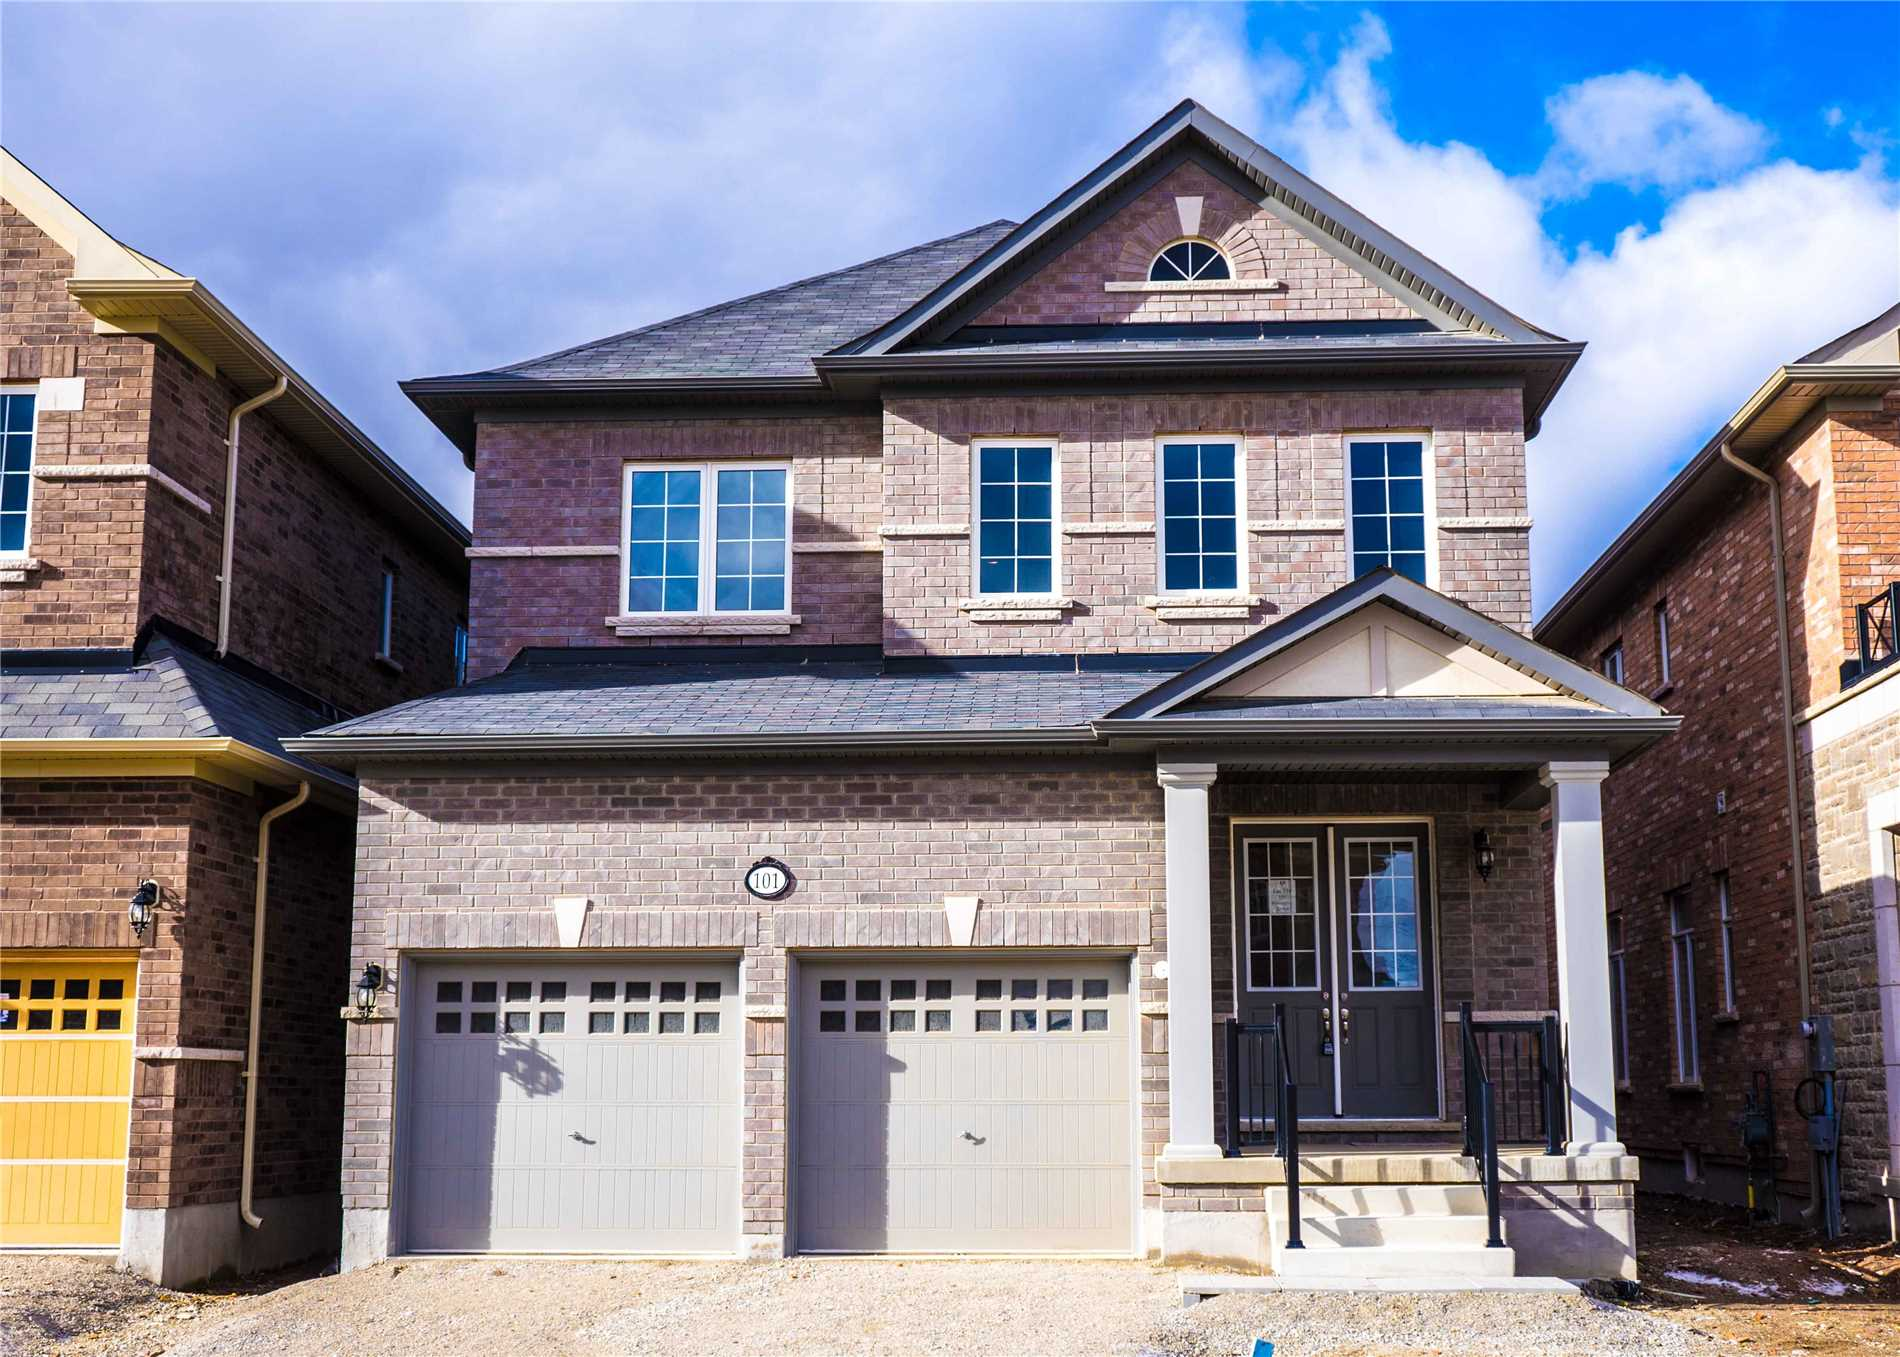 1 Bed House For Sale 1 Bedroom Houses Halton Hills 187 1 Bed Houses For Sale Page